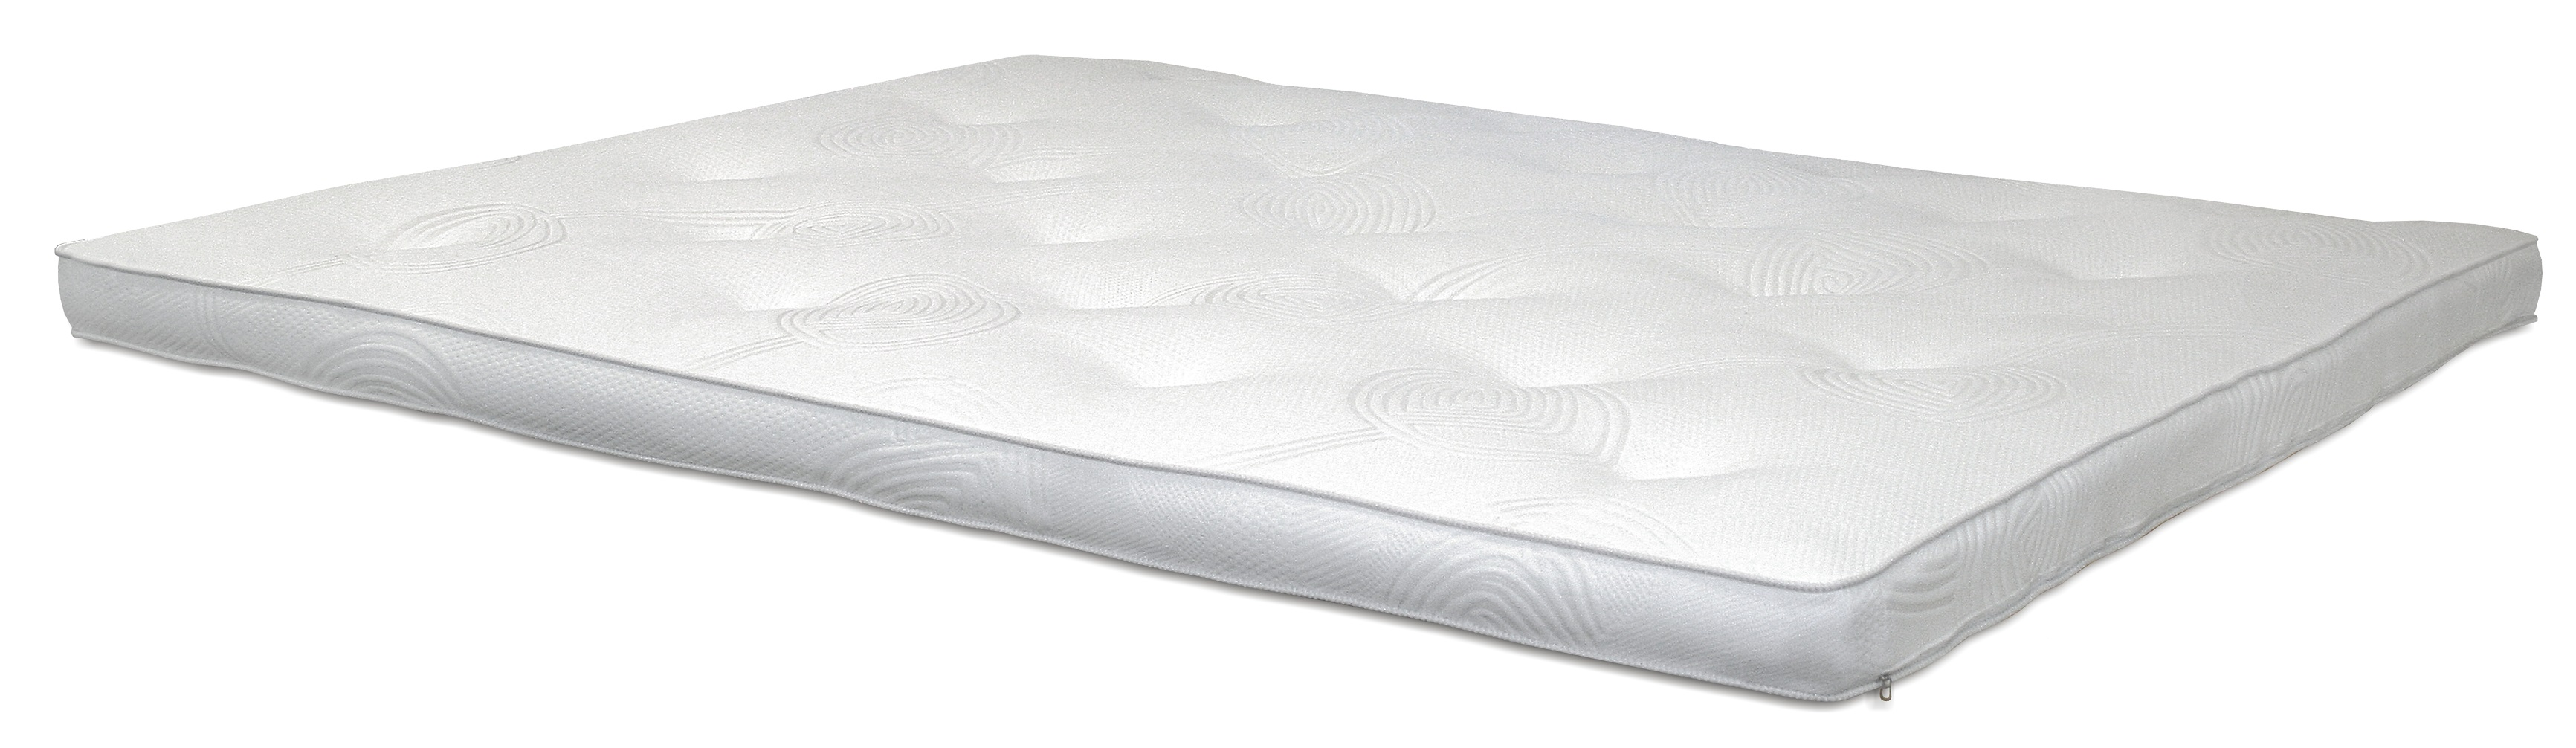 GRAND TOP mattress WHITE 1 14